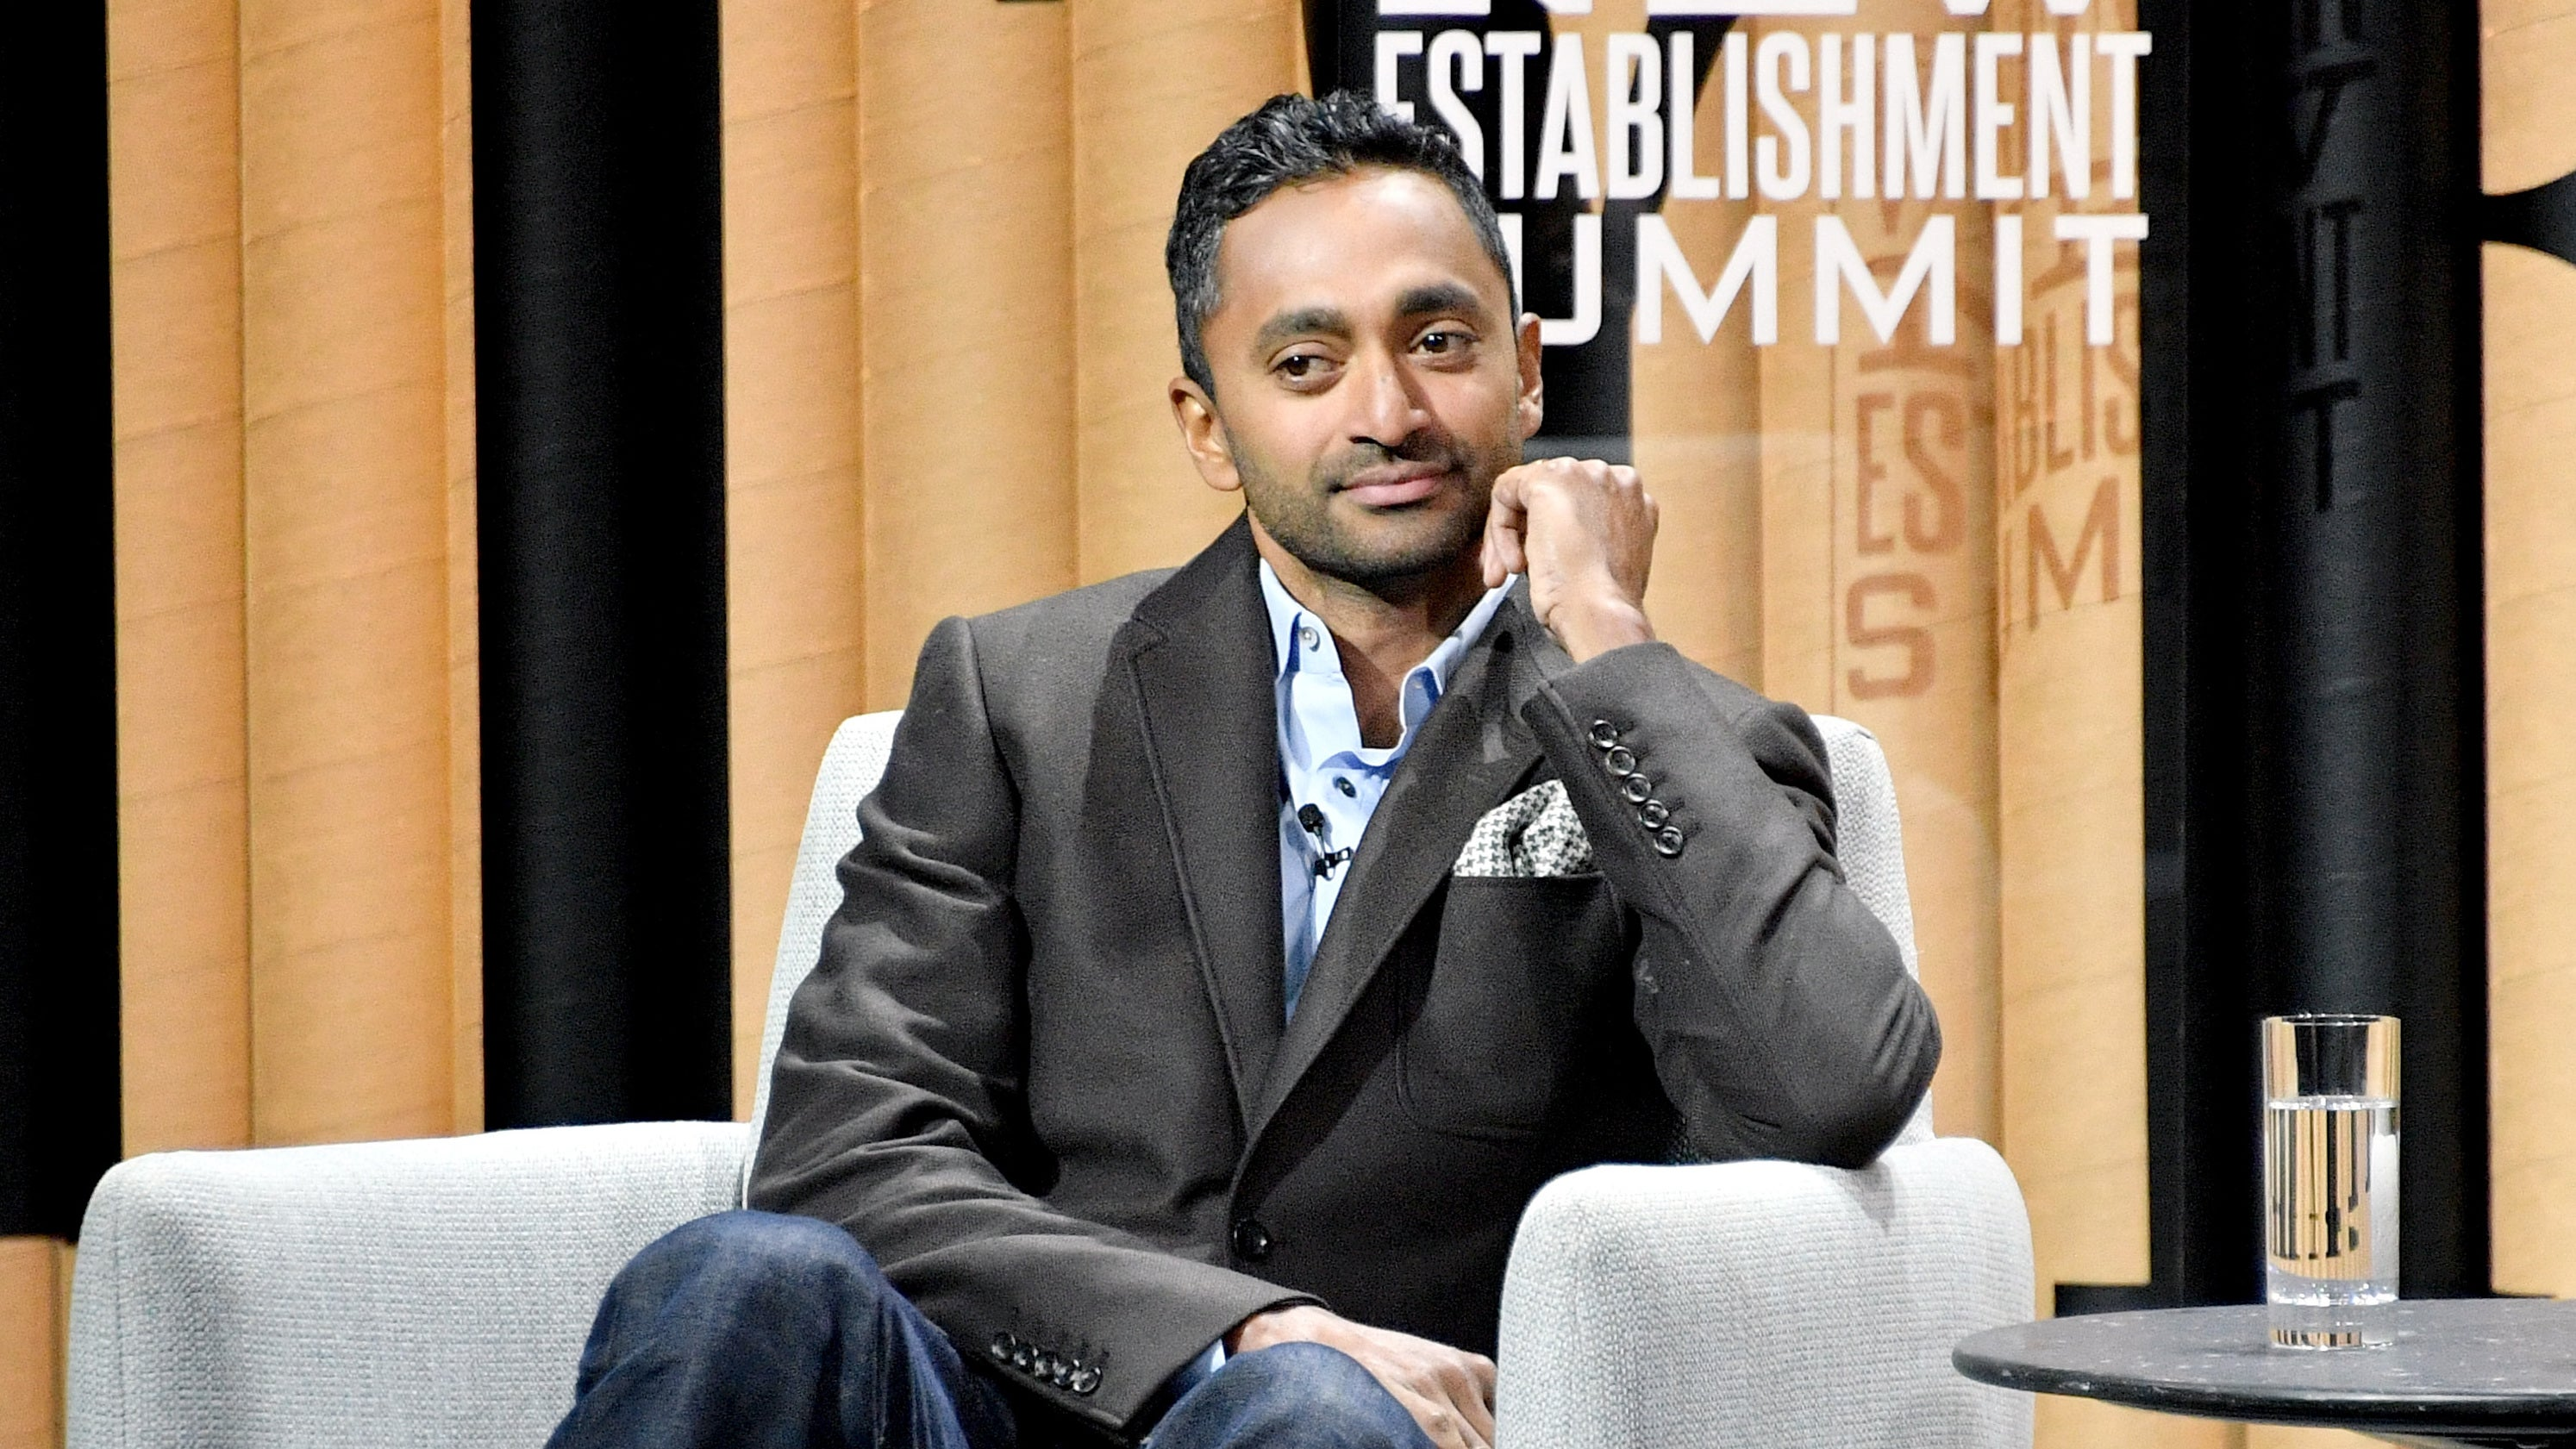 Former Facebook exec feels 'tremendous guilt' for helping build the platform